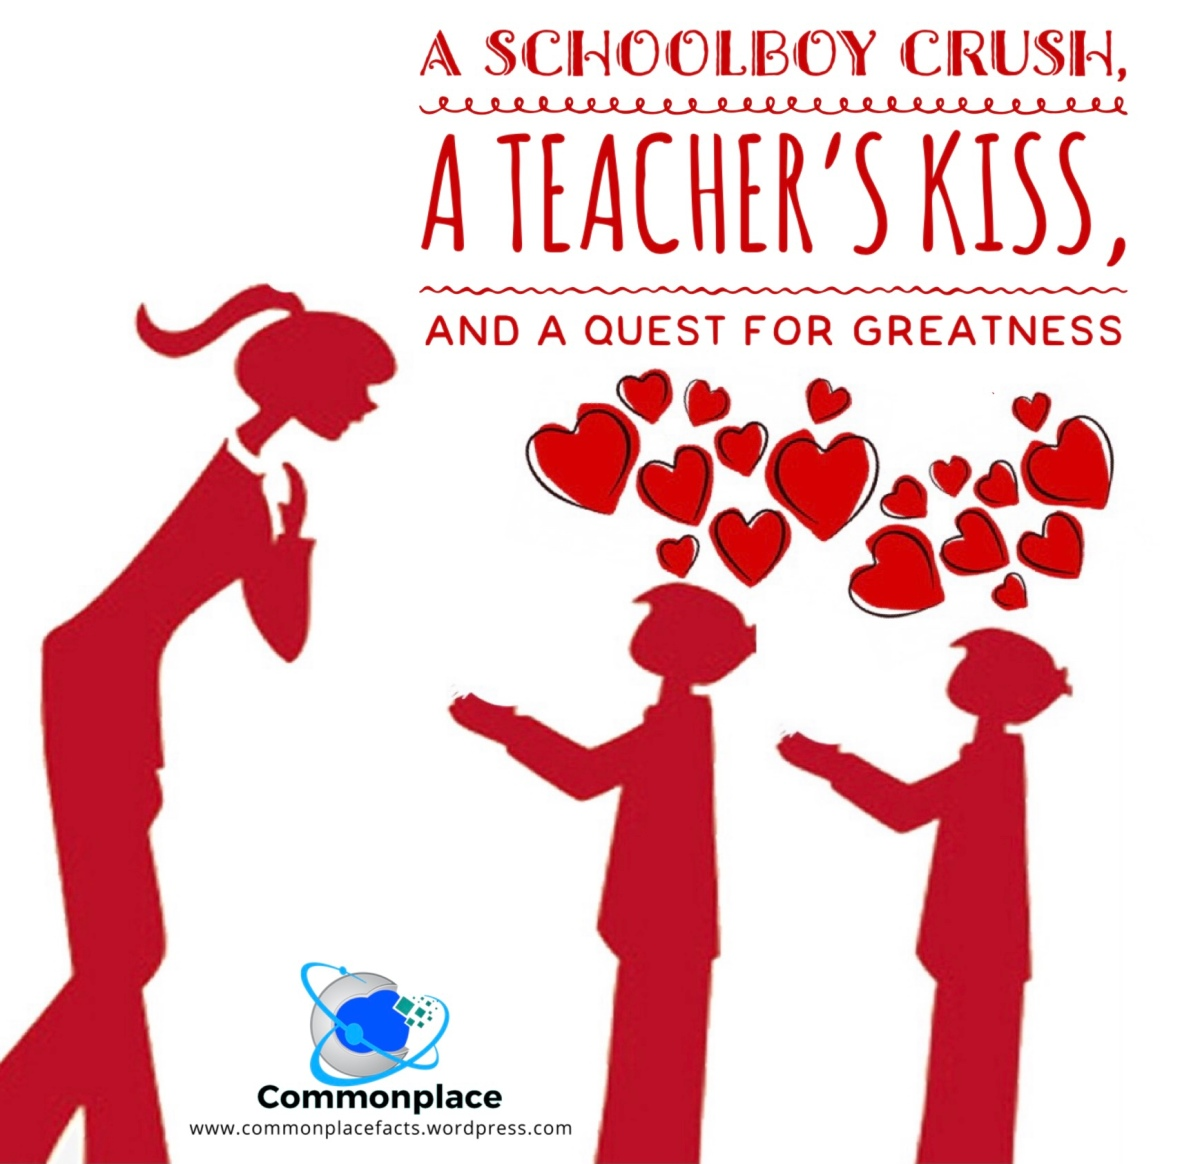 A Schoolboy Crush, a Teacher's Kiss, and a Quest for Greatness #SocialMediaMonday